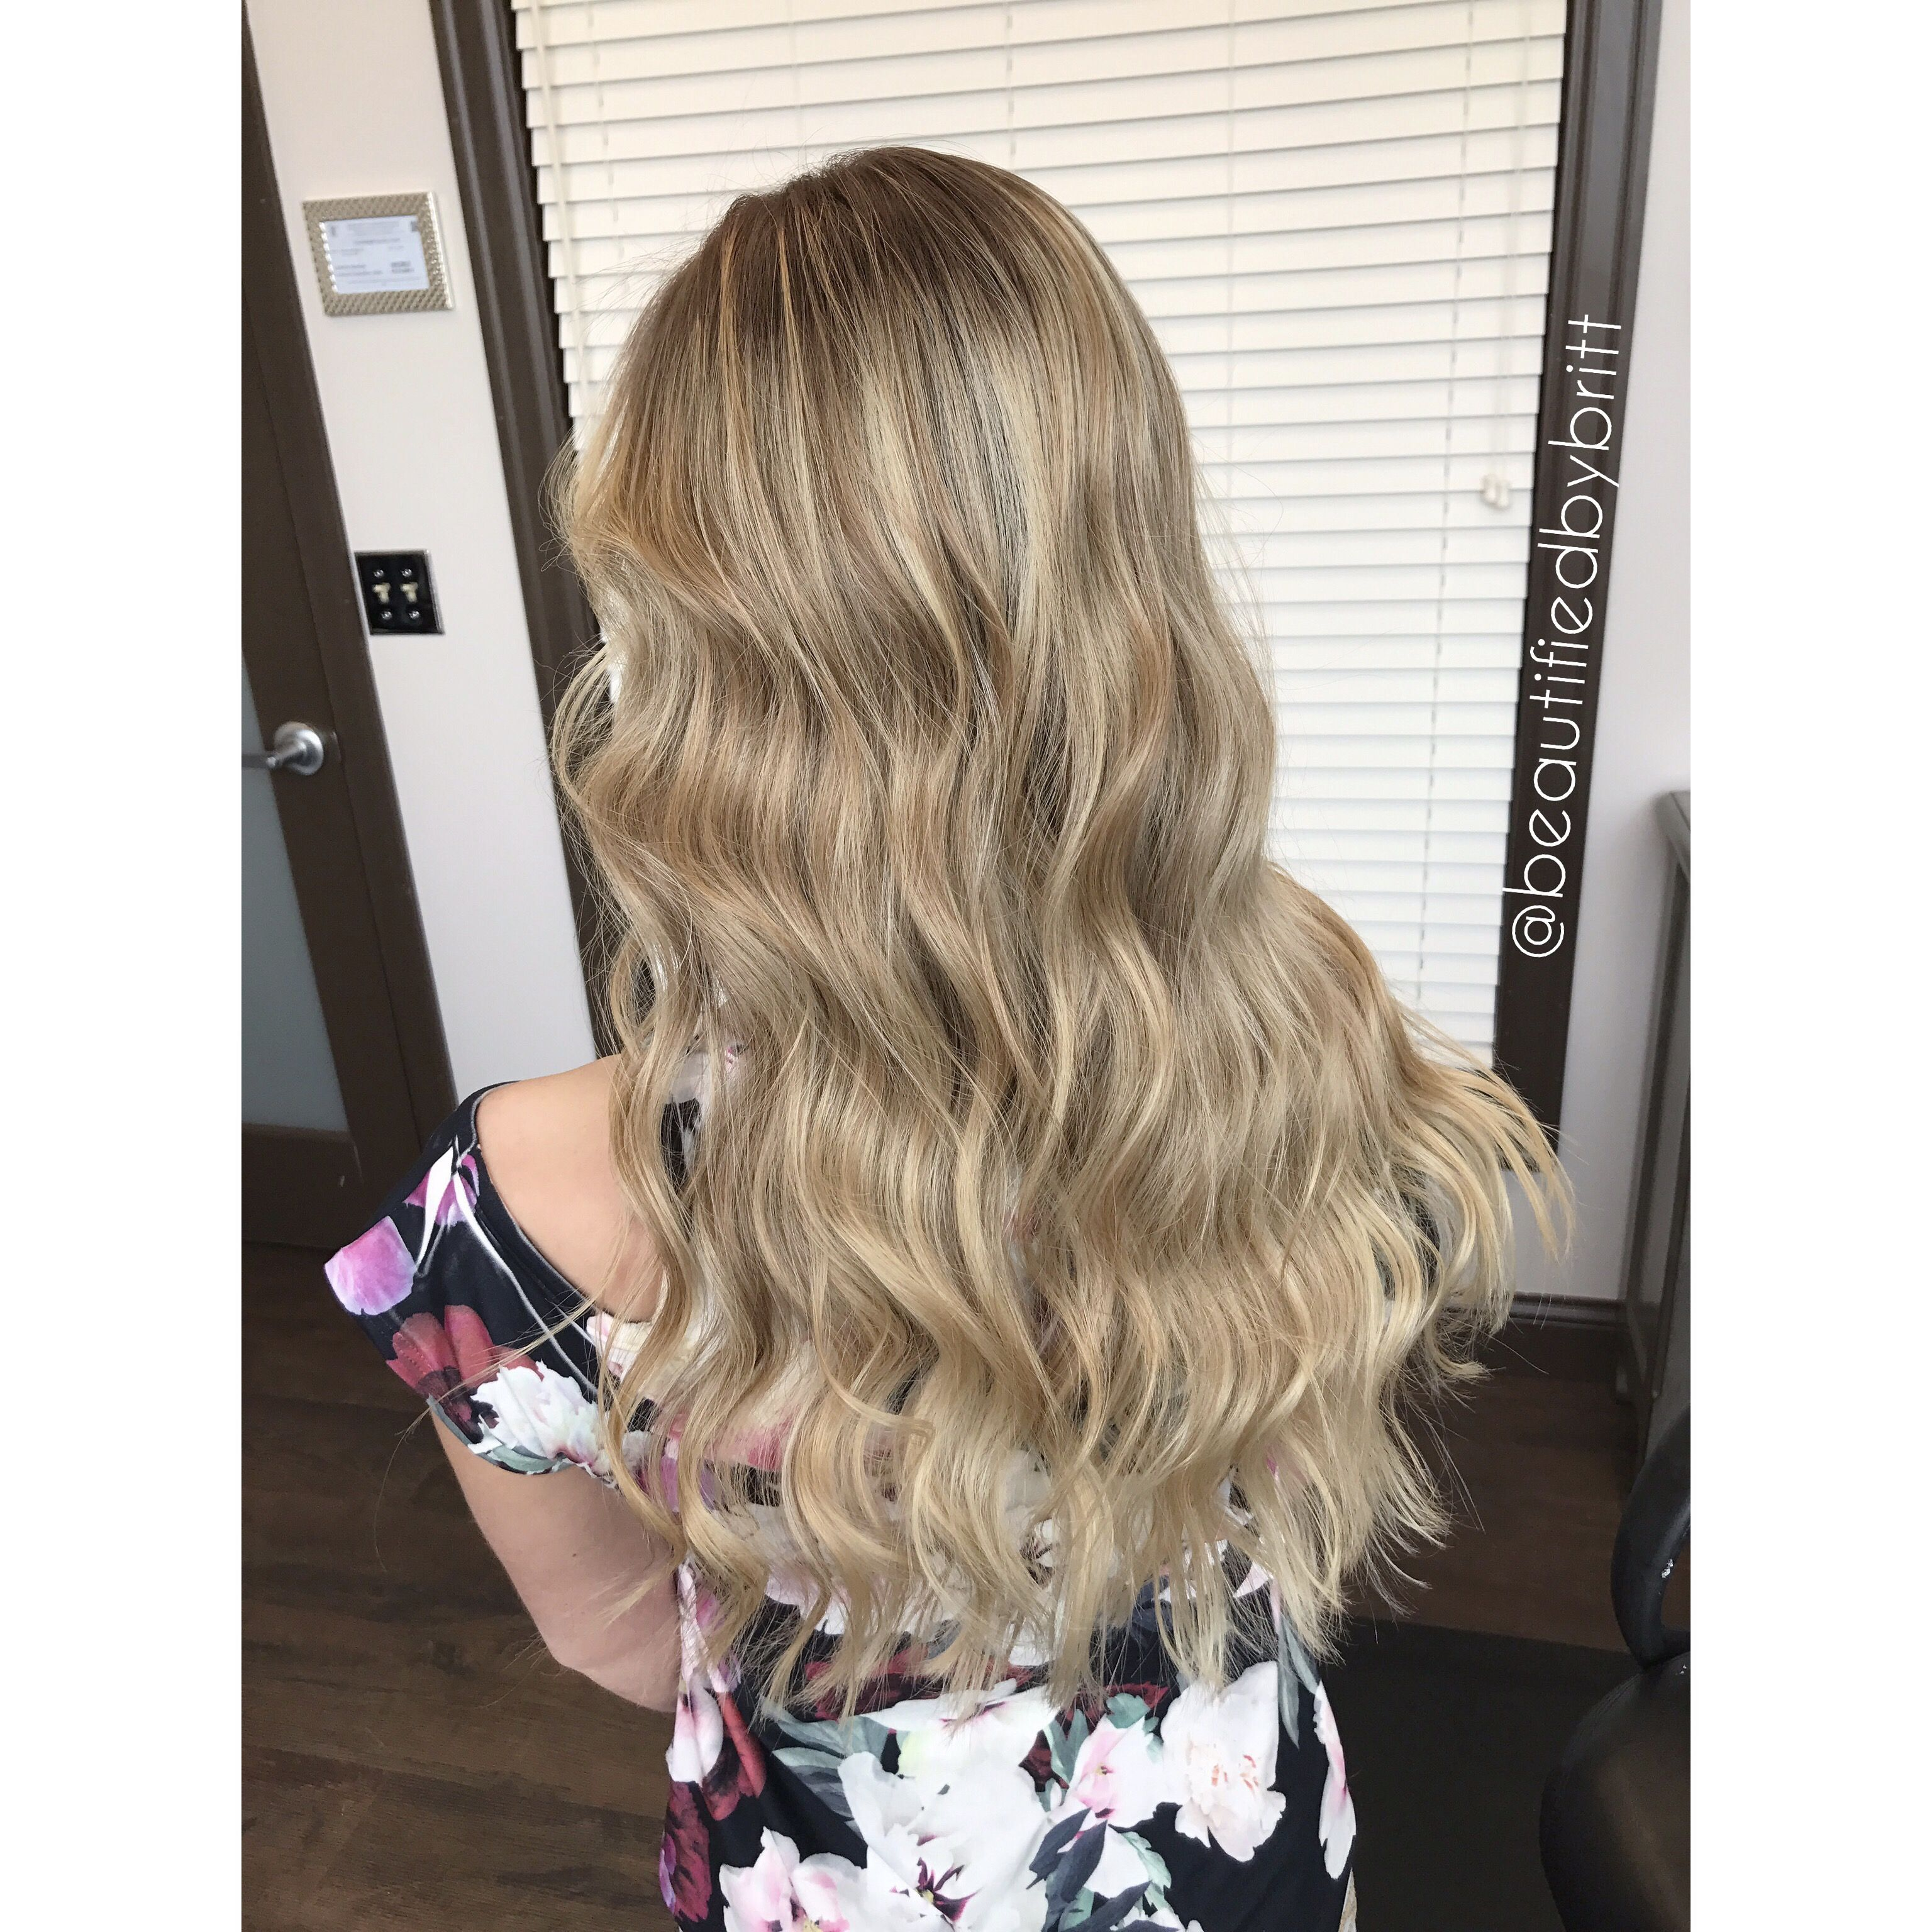 Pin by Brittany Tillemans on Long Hair Long hair styles